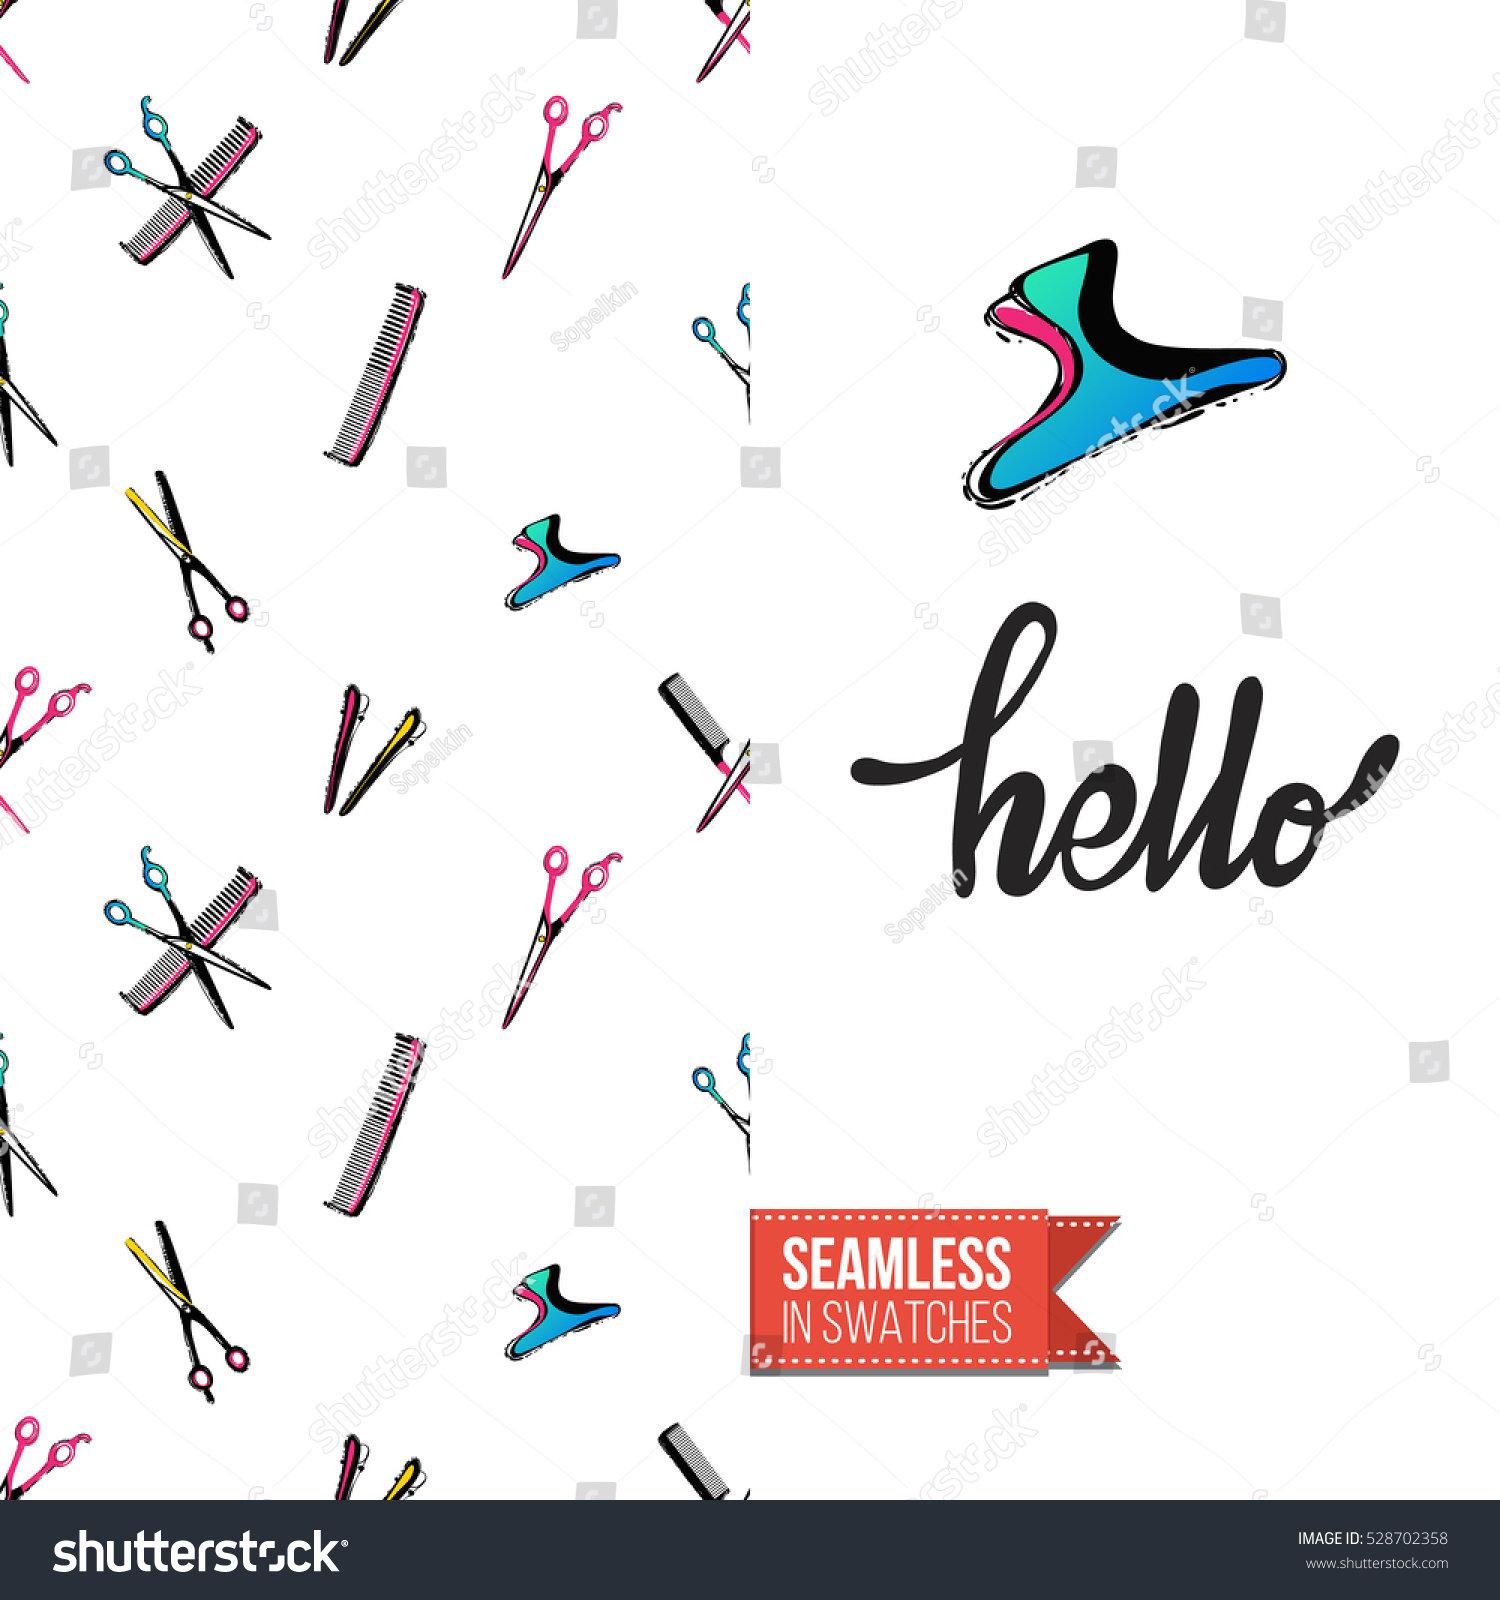 Greeting Card Promotion Beauty Salon Seamless Stock Vector 528702358